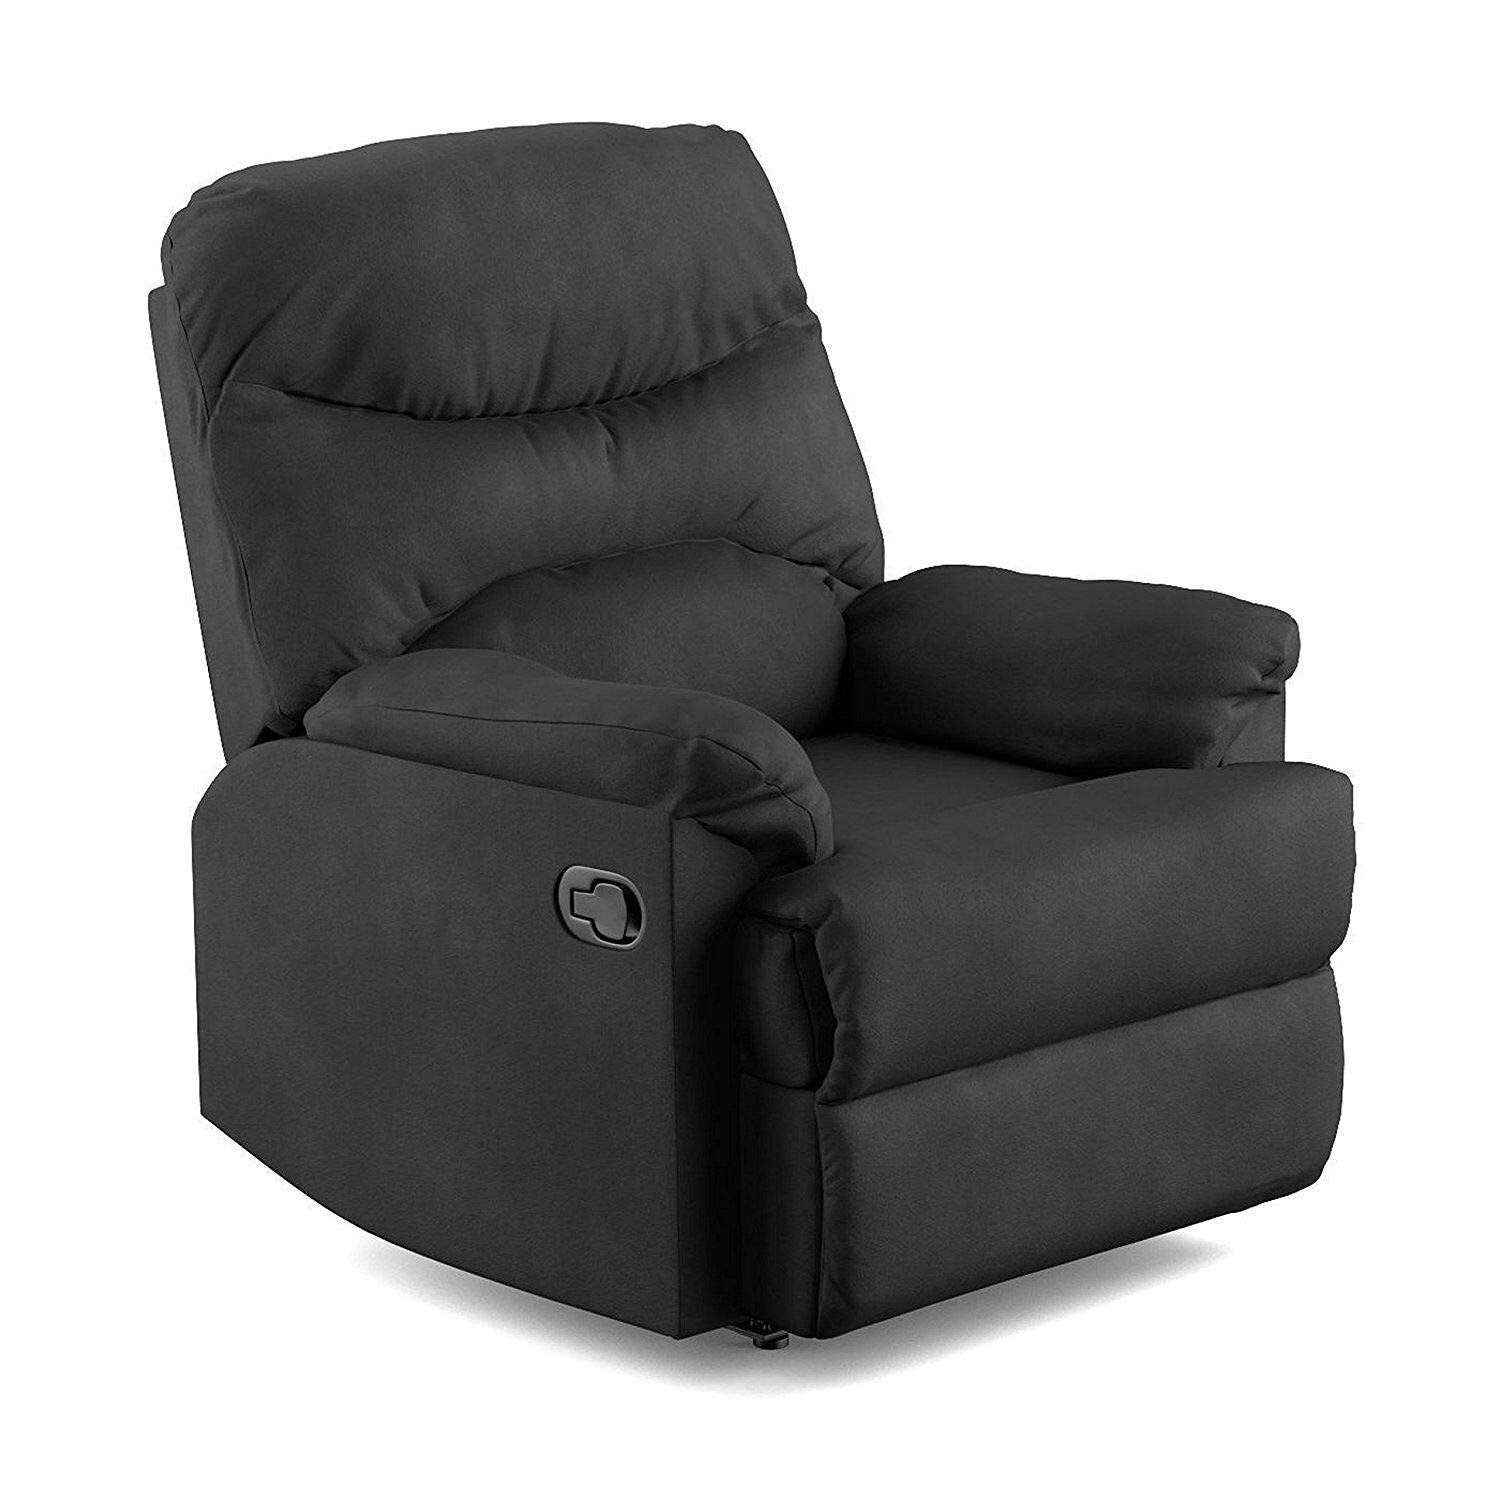 Black Wall Hugger Microfiber Recliner with Ultra Padded Armrests Full Chaise Pad Between The Chair and The Leg Rest Comfortable Lounger Perfect for Living Room Theater Or Media Room Use Space Saving by Valeur